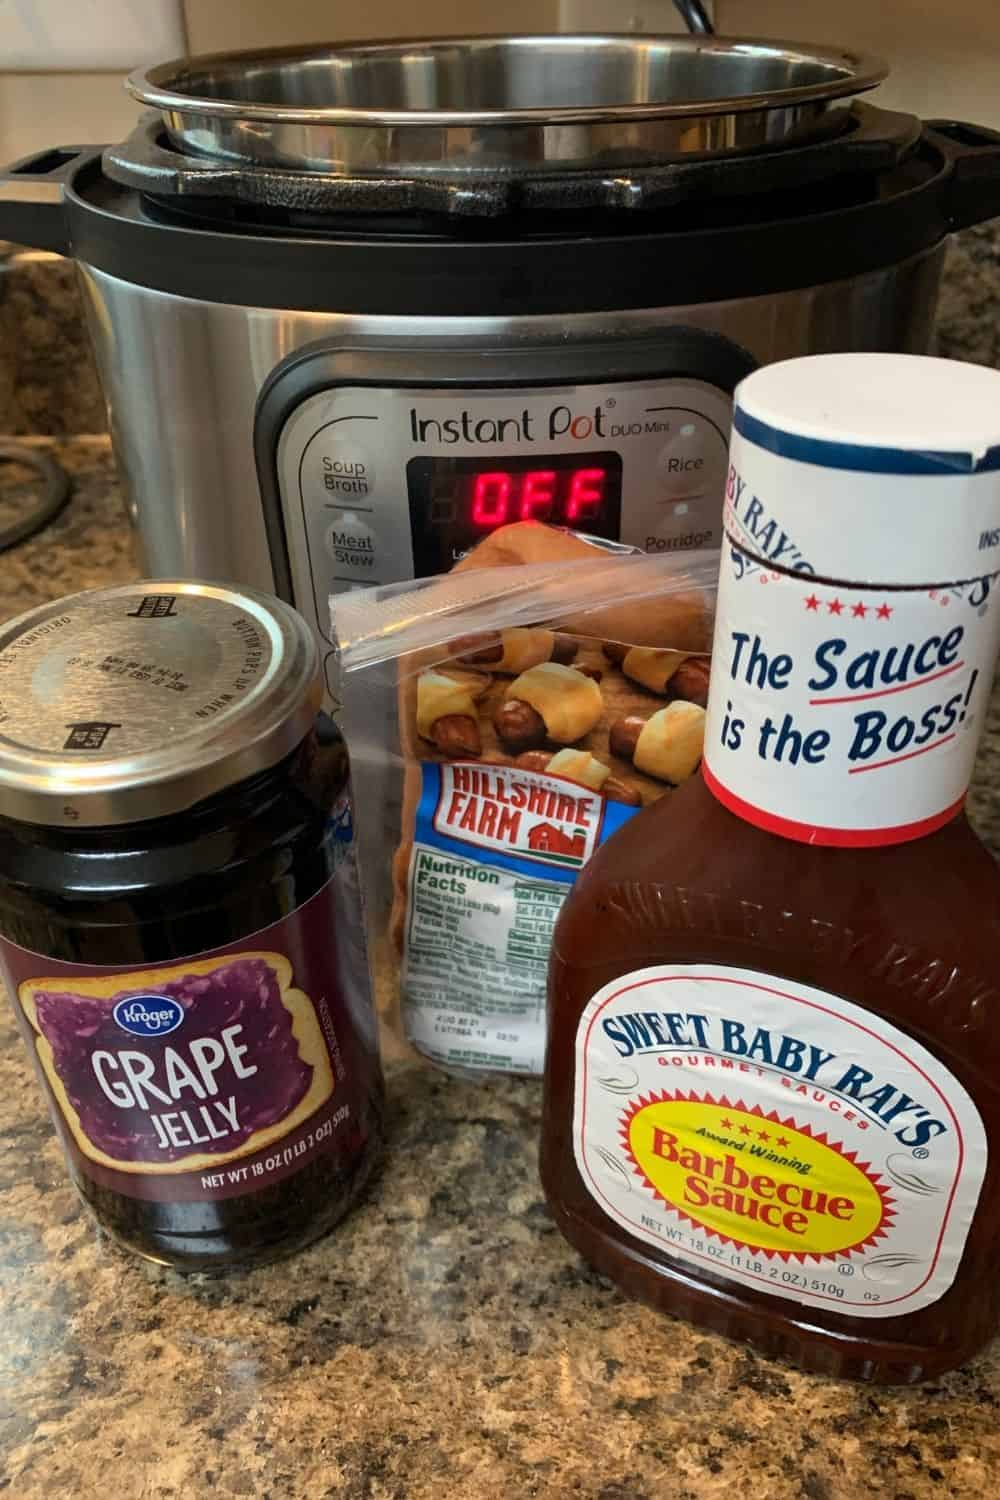 a jar of grape jelly, a bottle of bbq sauce, and a package of Hillshire Farm cocktail sausages in front of an Instant Pot